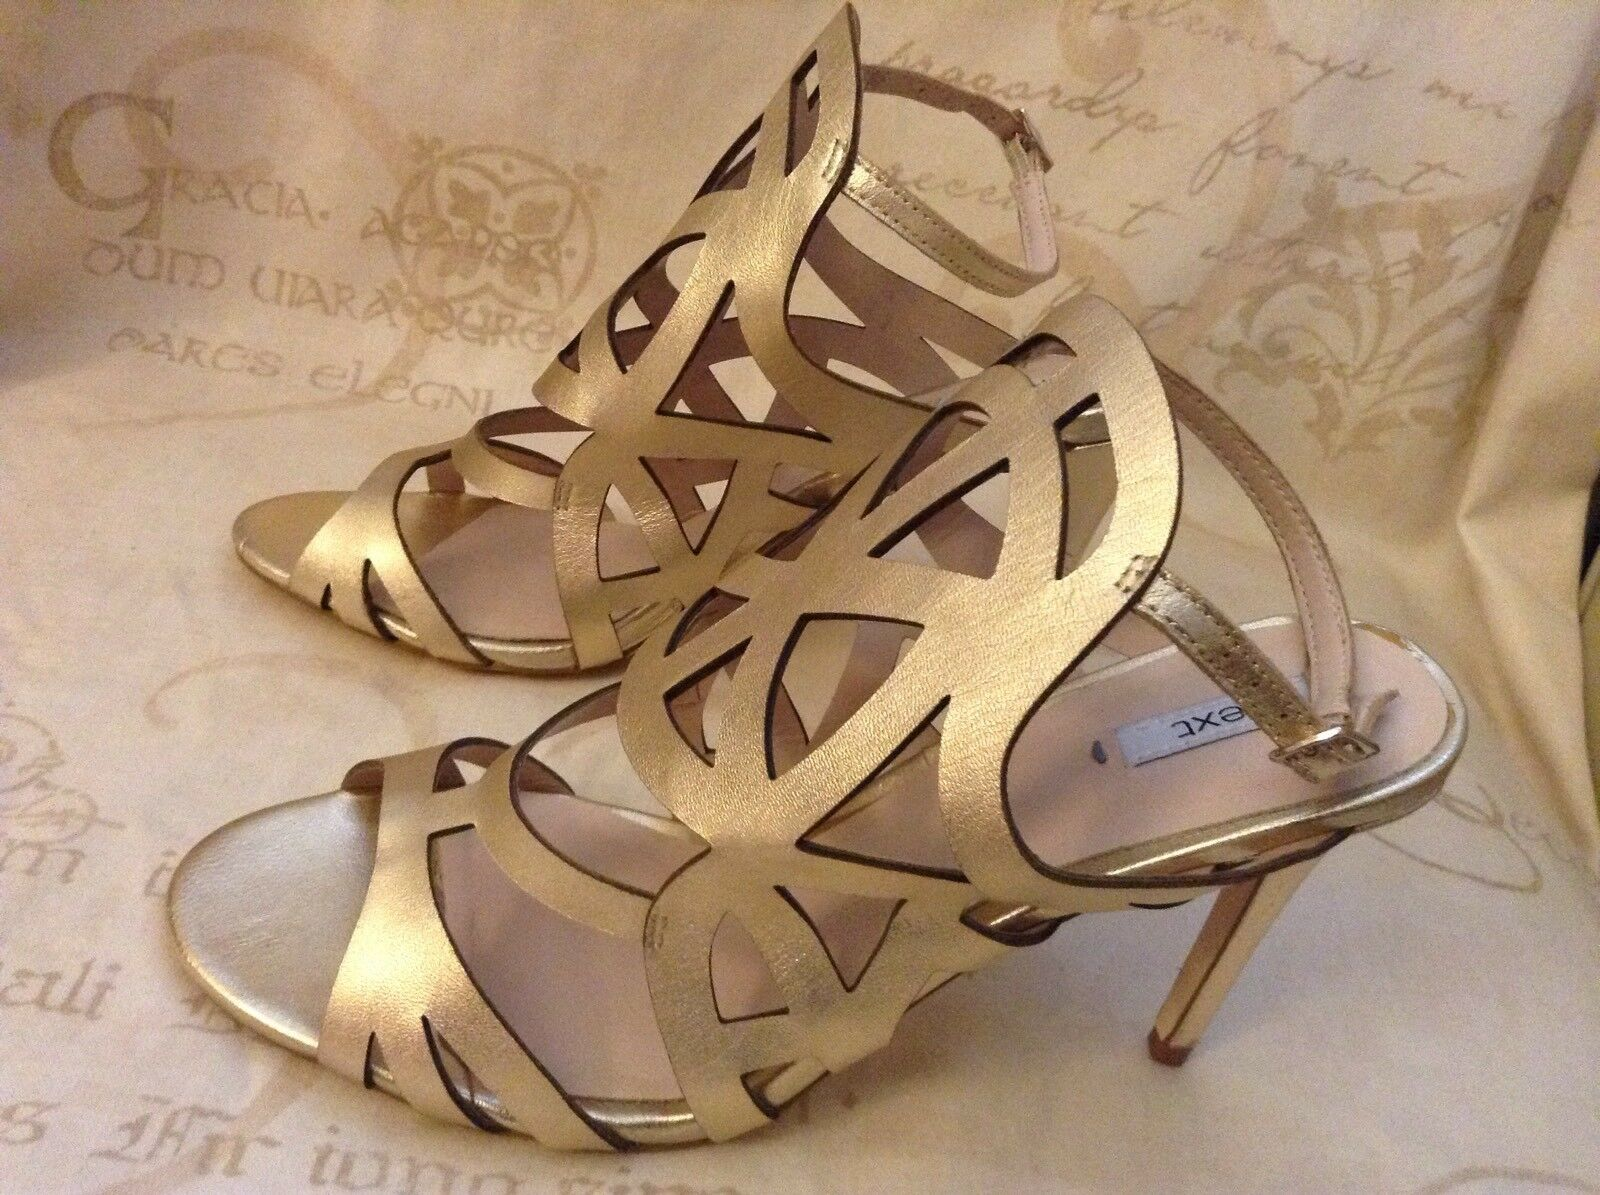 NewNextSize 6.5 gold Caged Heeled Leather Sandals shoes Party (40EU